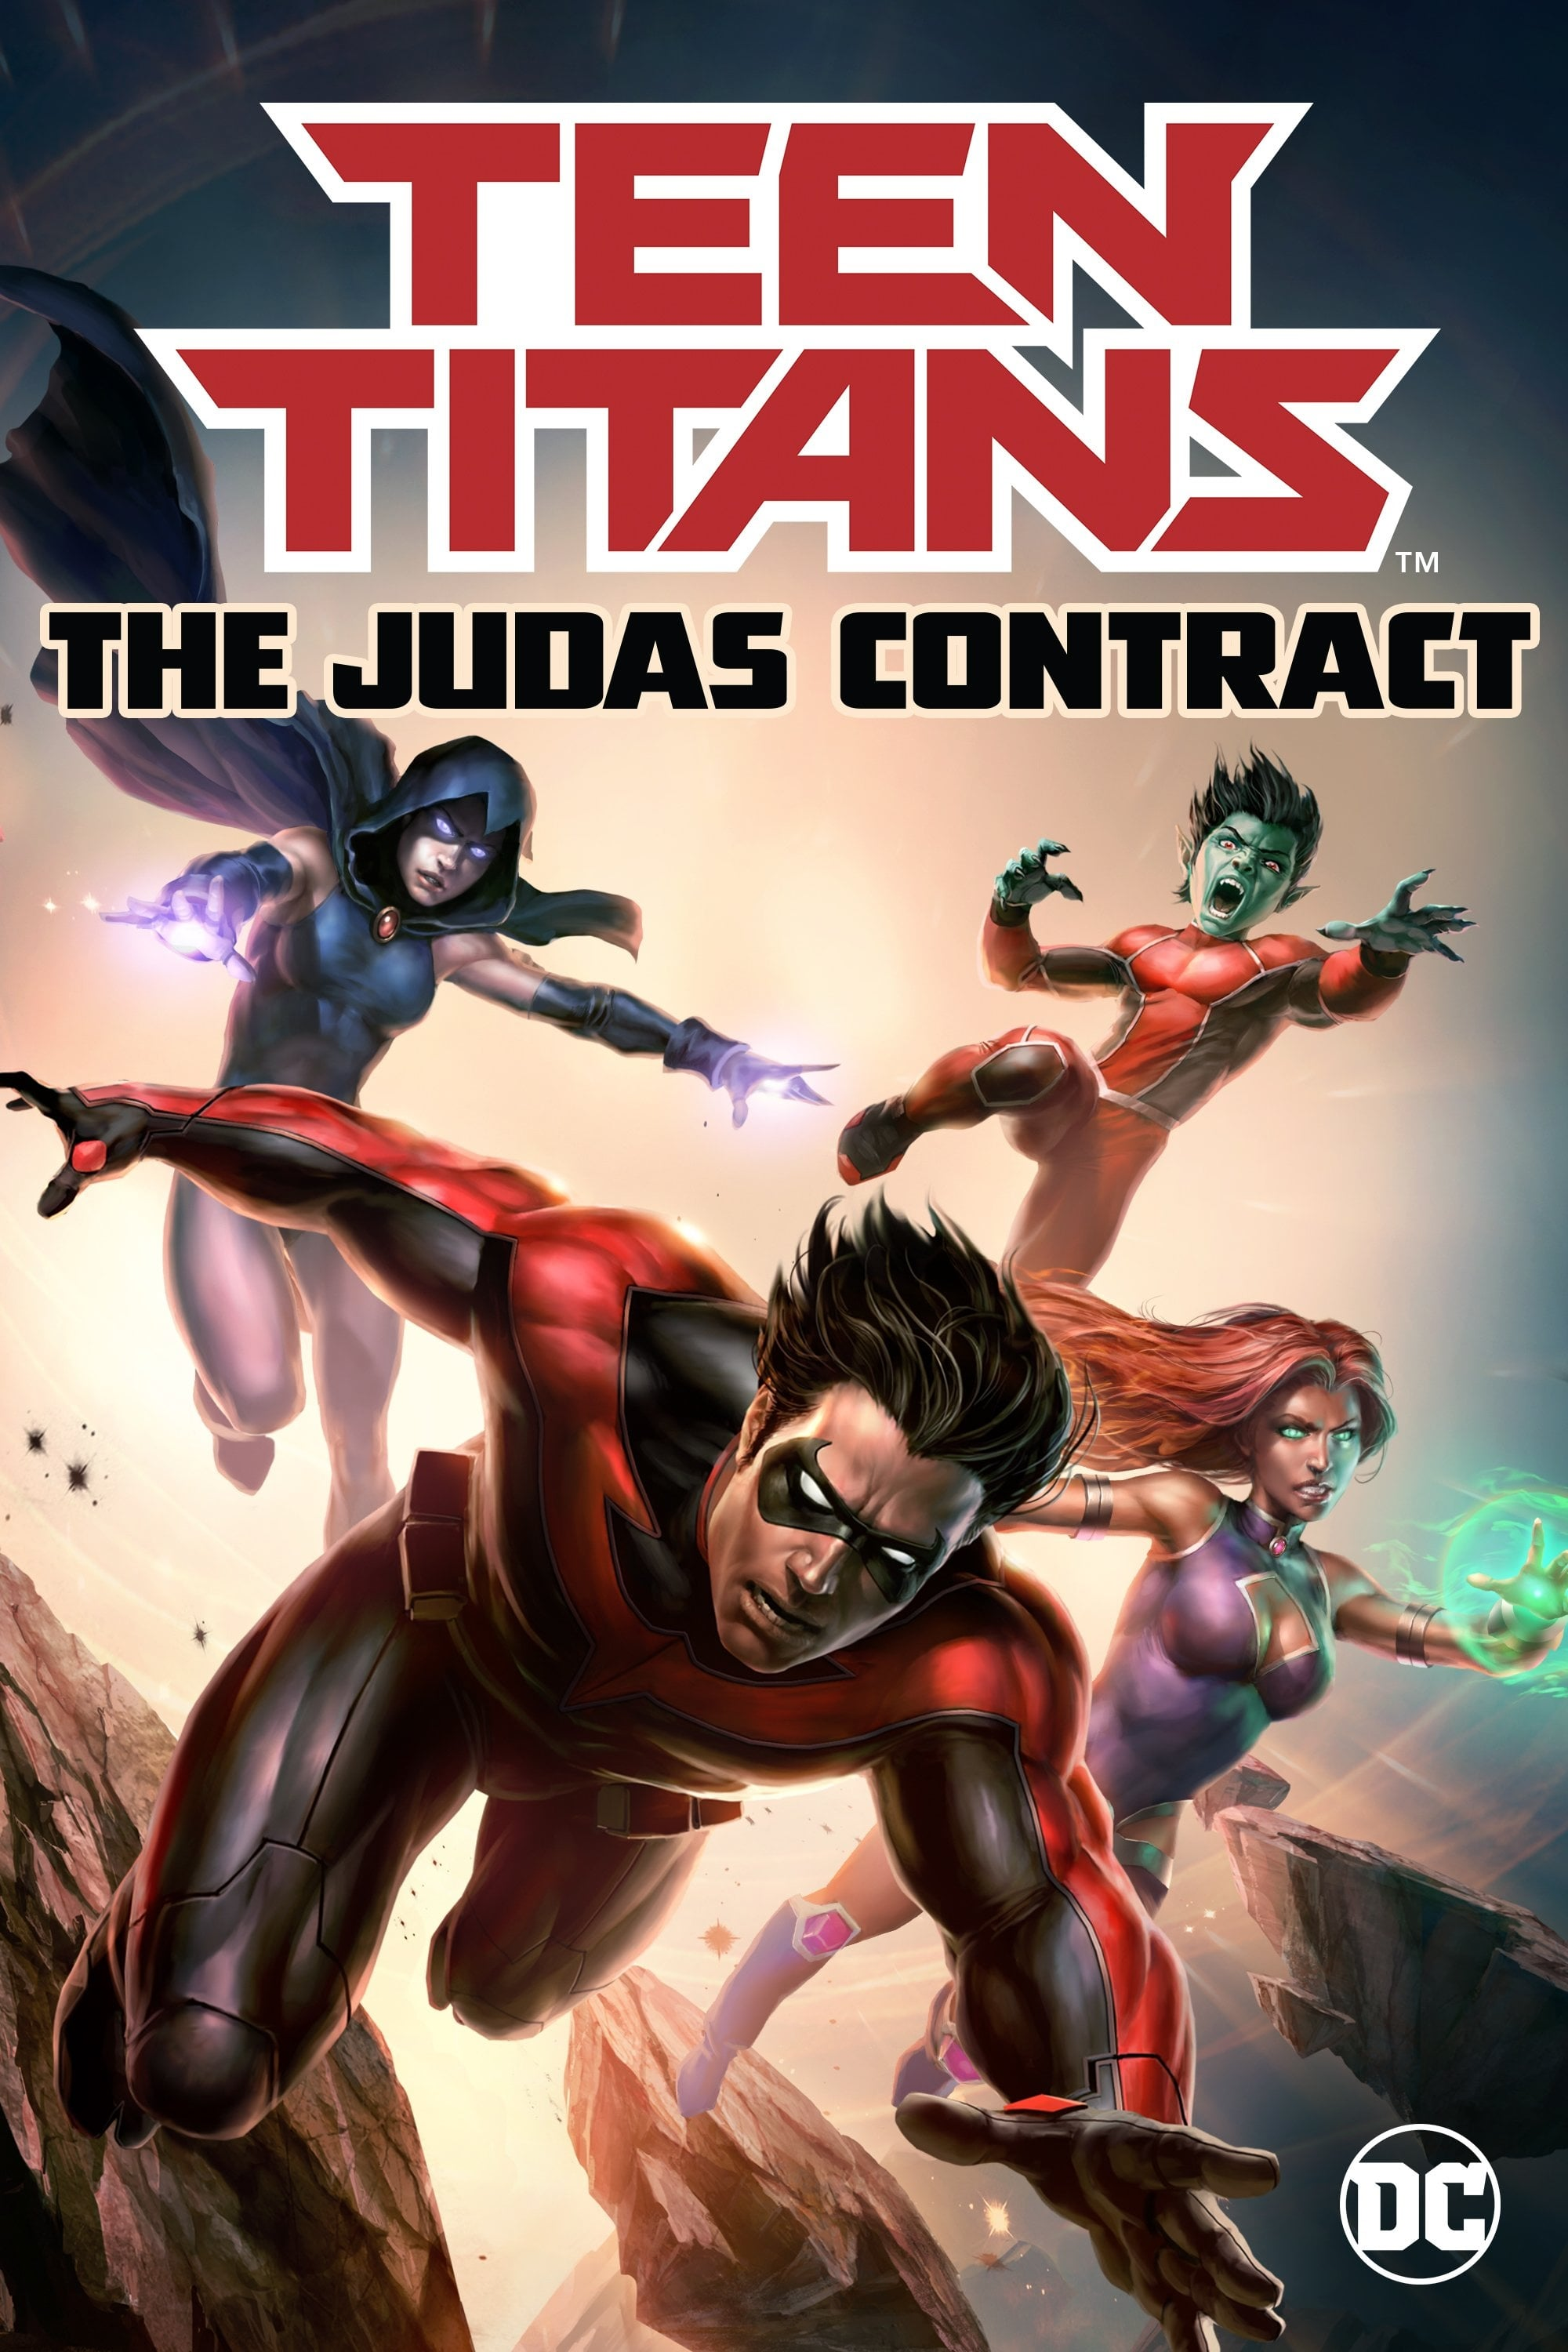 Download Teen Titans The Judas Contract 2017 Hd 720P Full Movie For Free - Flixtor -4392